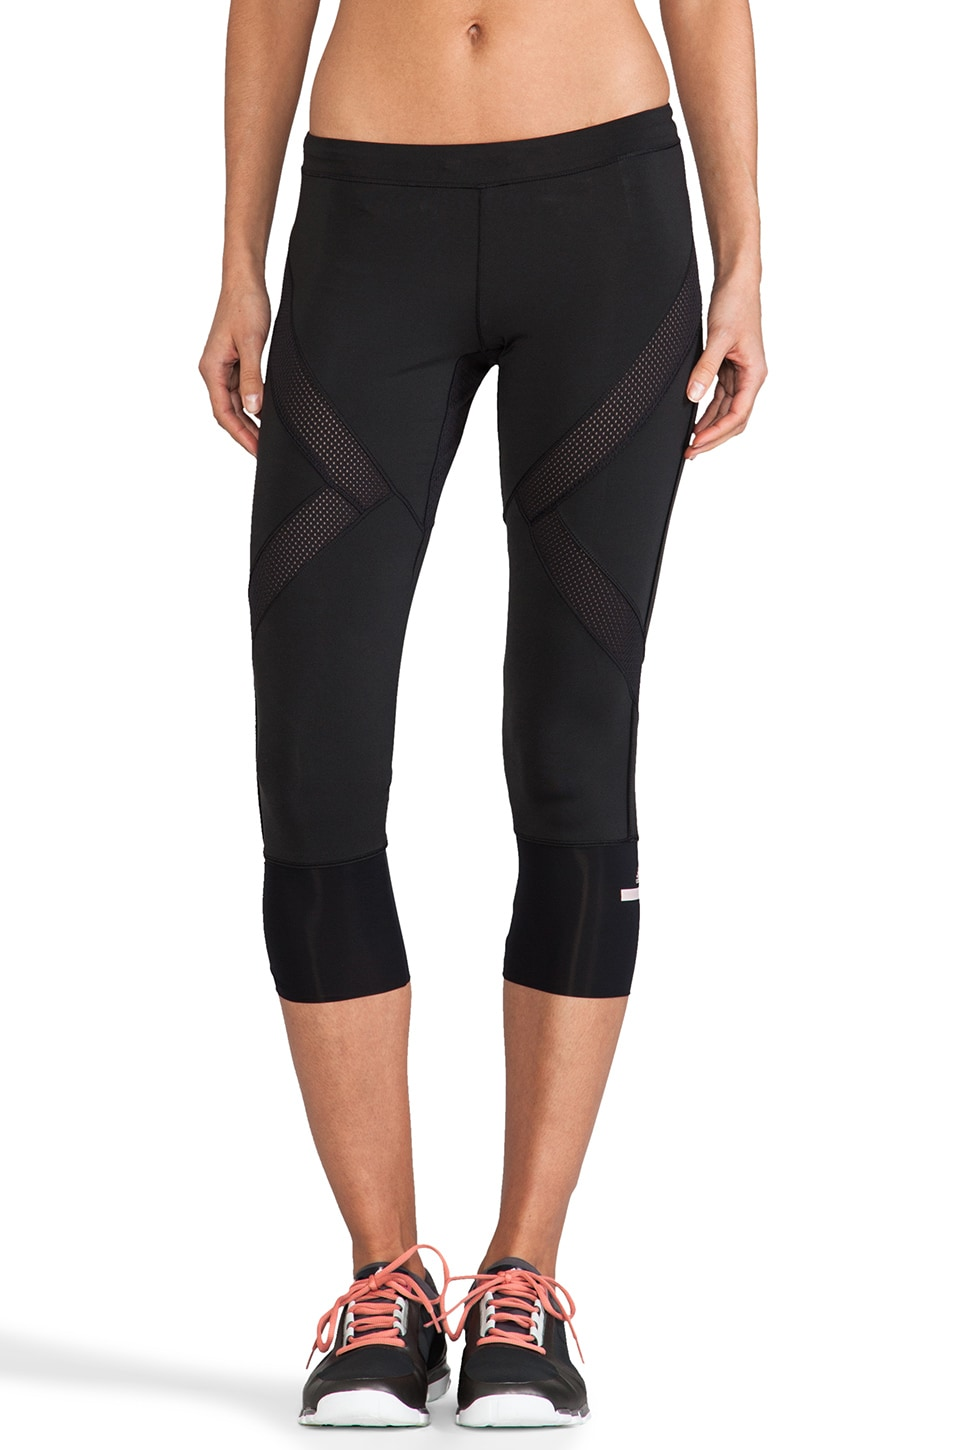 adidas by Stella McCartney 2005 3/4 Tight Legging in Black